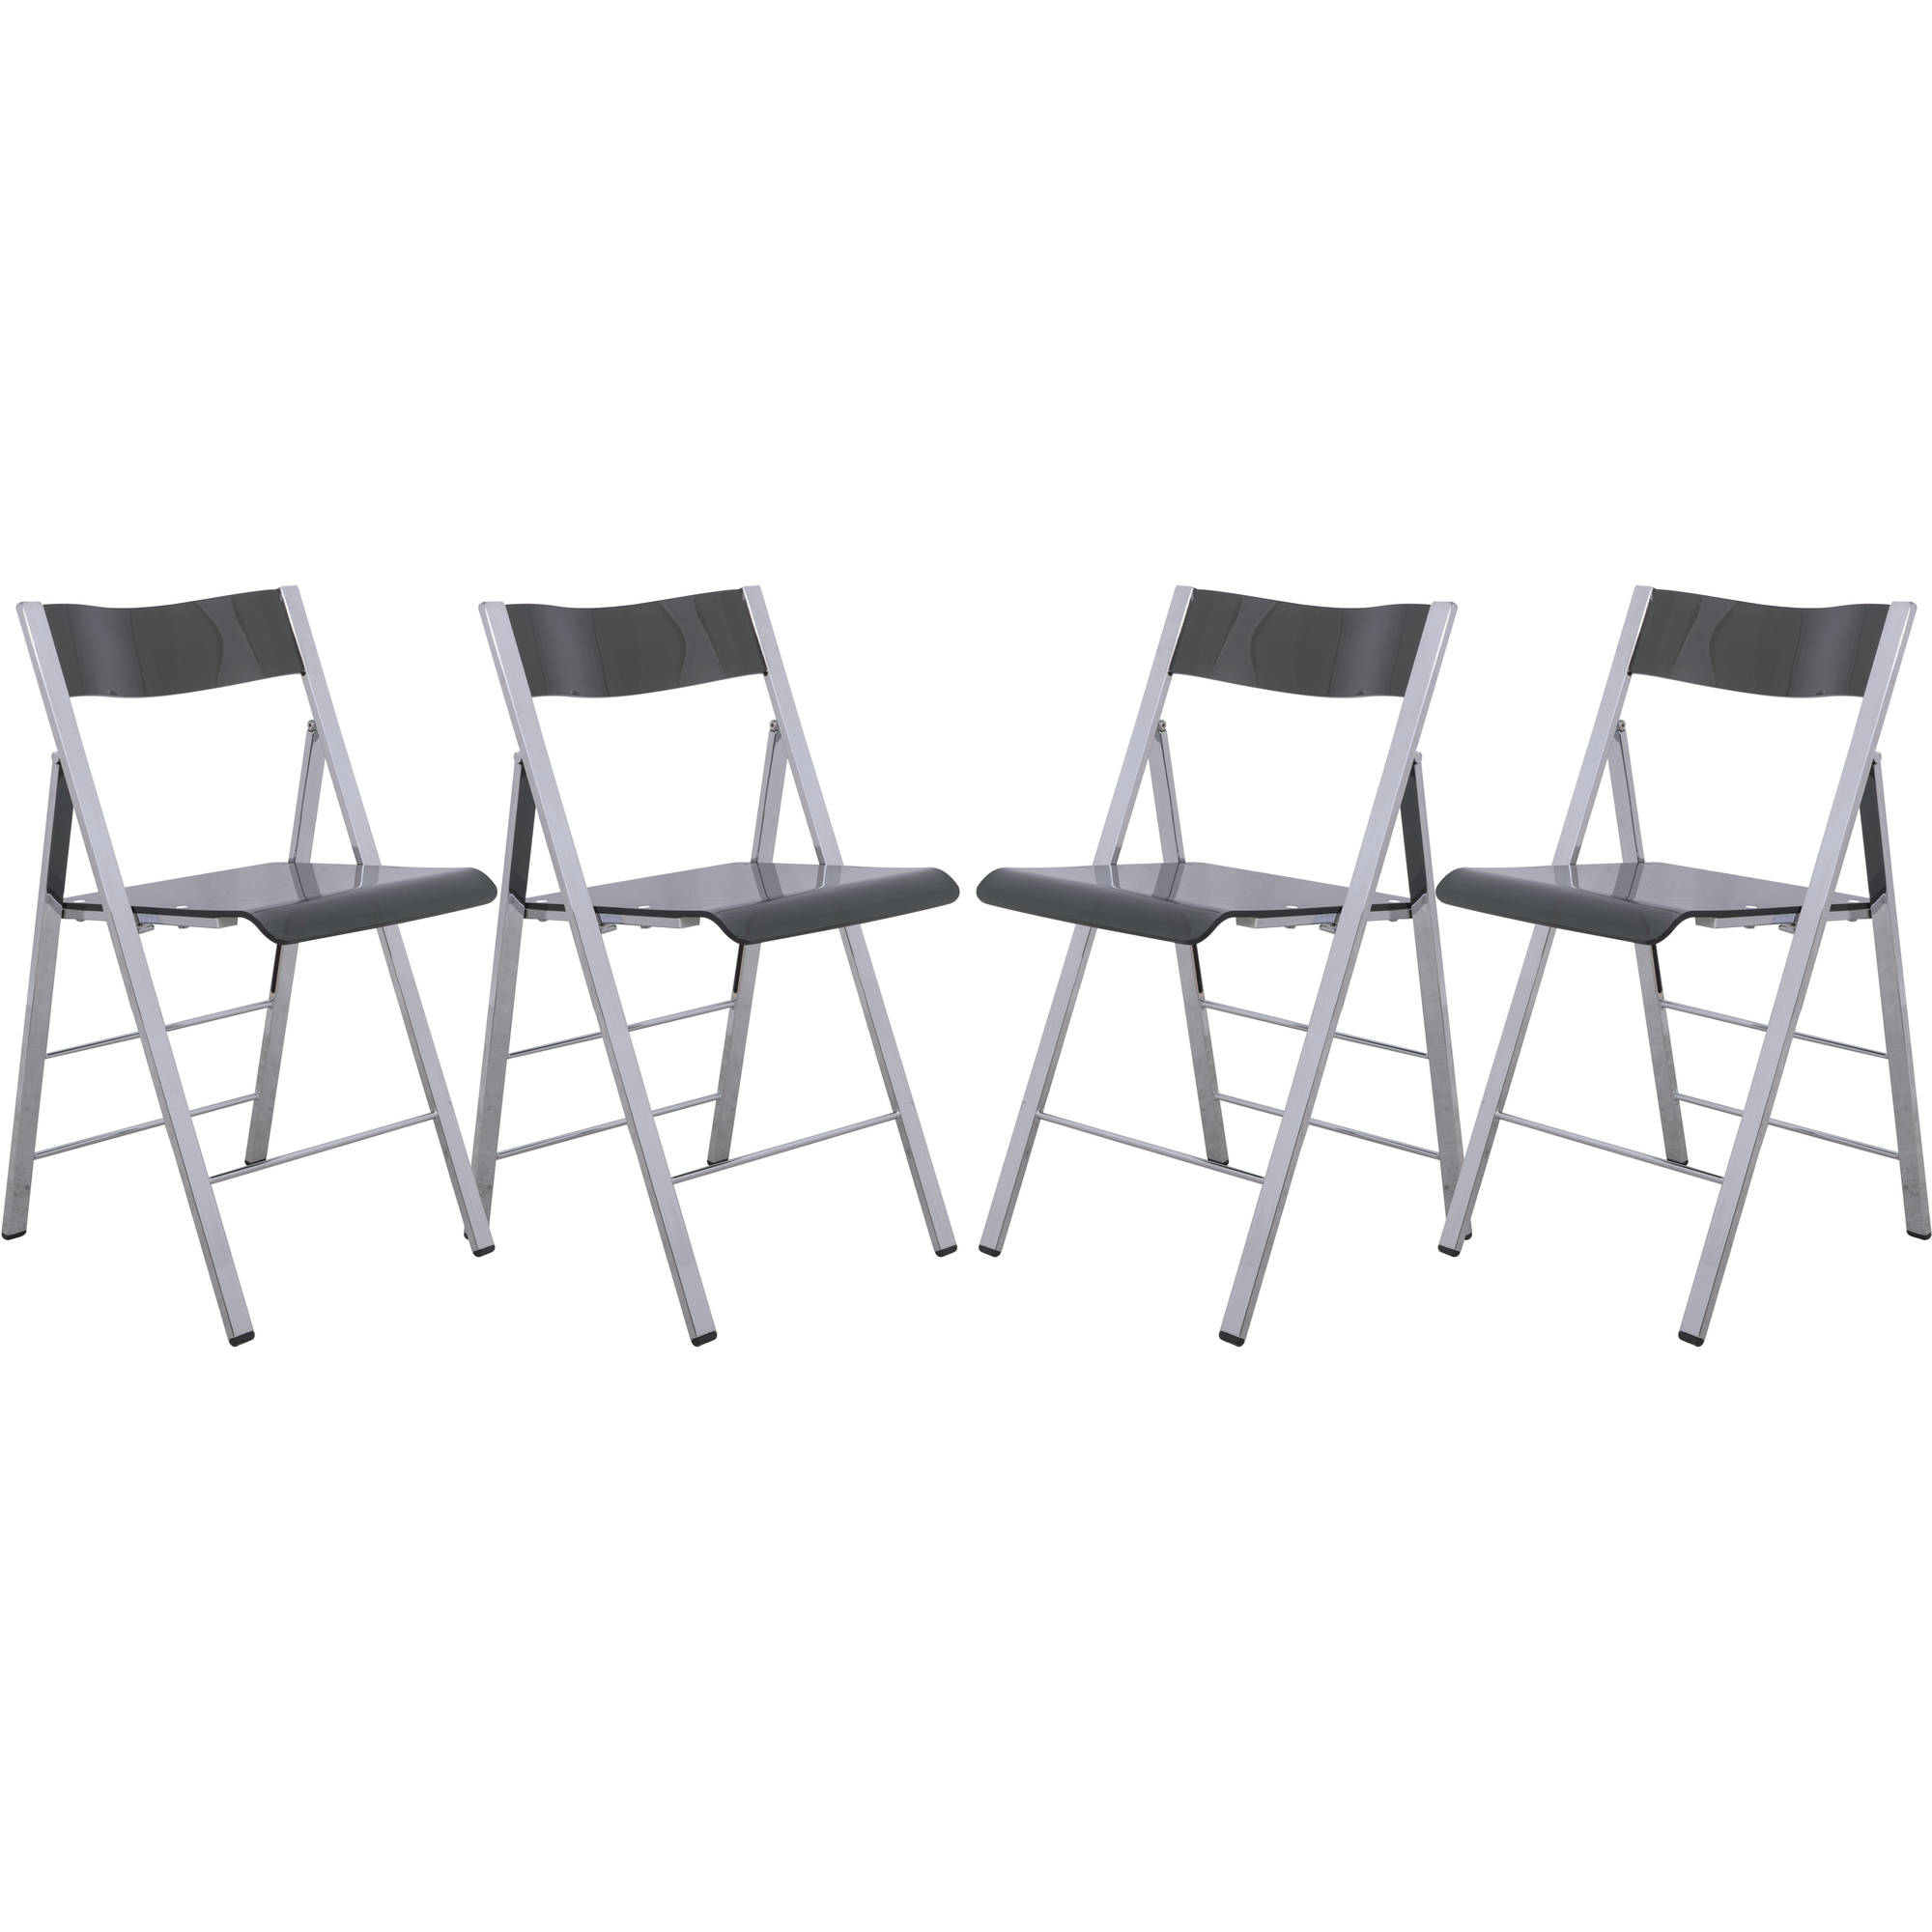 LeisureMod Menno Modern Acrylic Folding Chair in Transparent Black, Set of 4